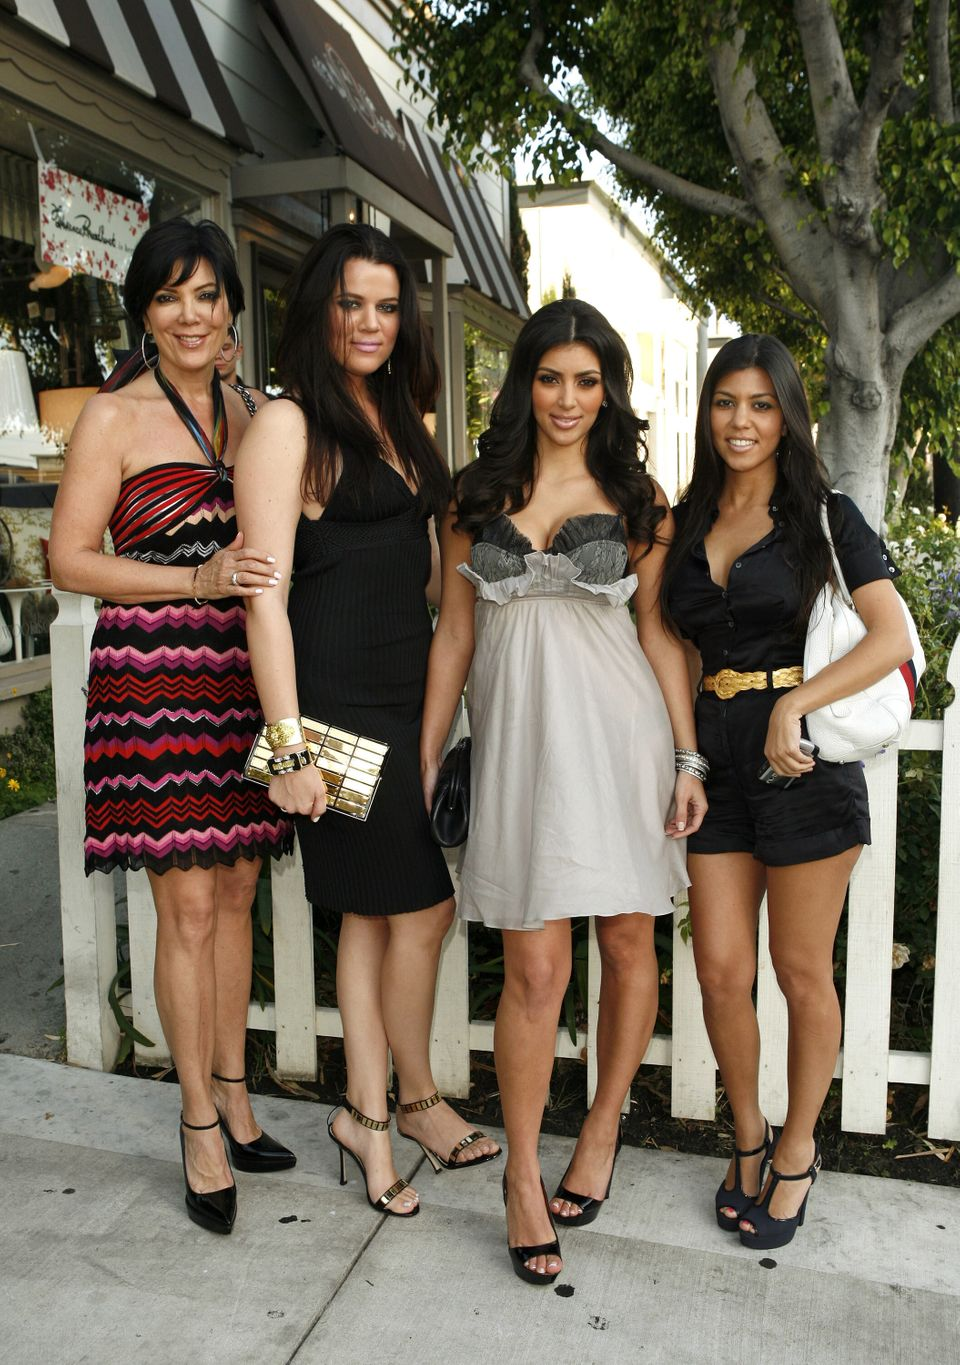 Remembering The Fashion From Season 1 Of 'Keeping Up With The Kardashians' 10